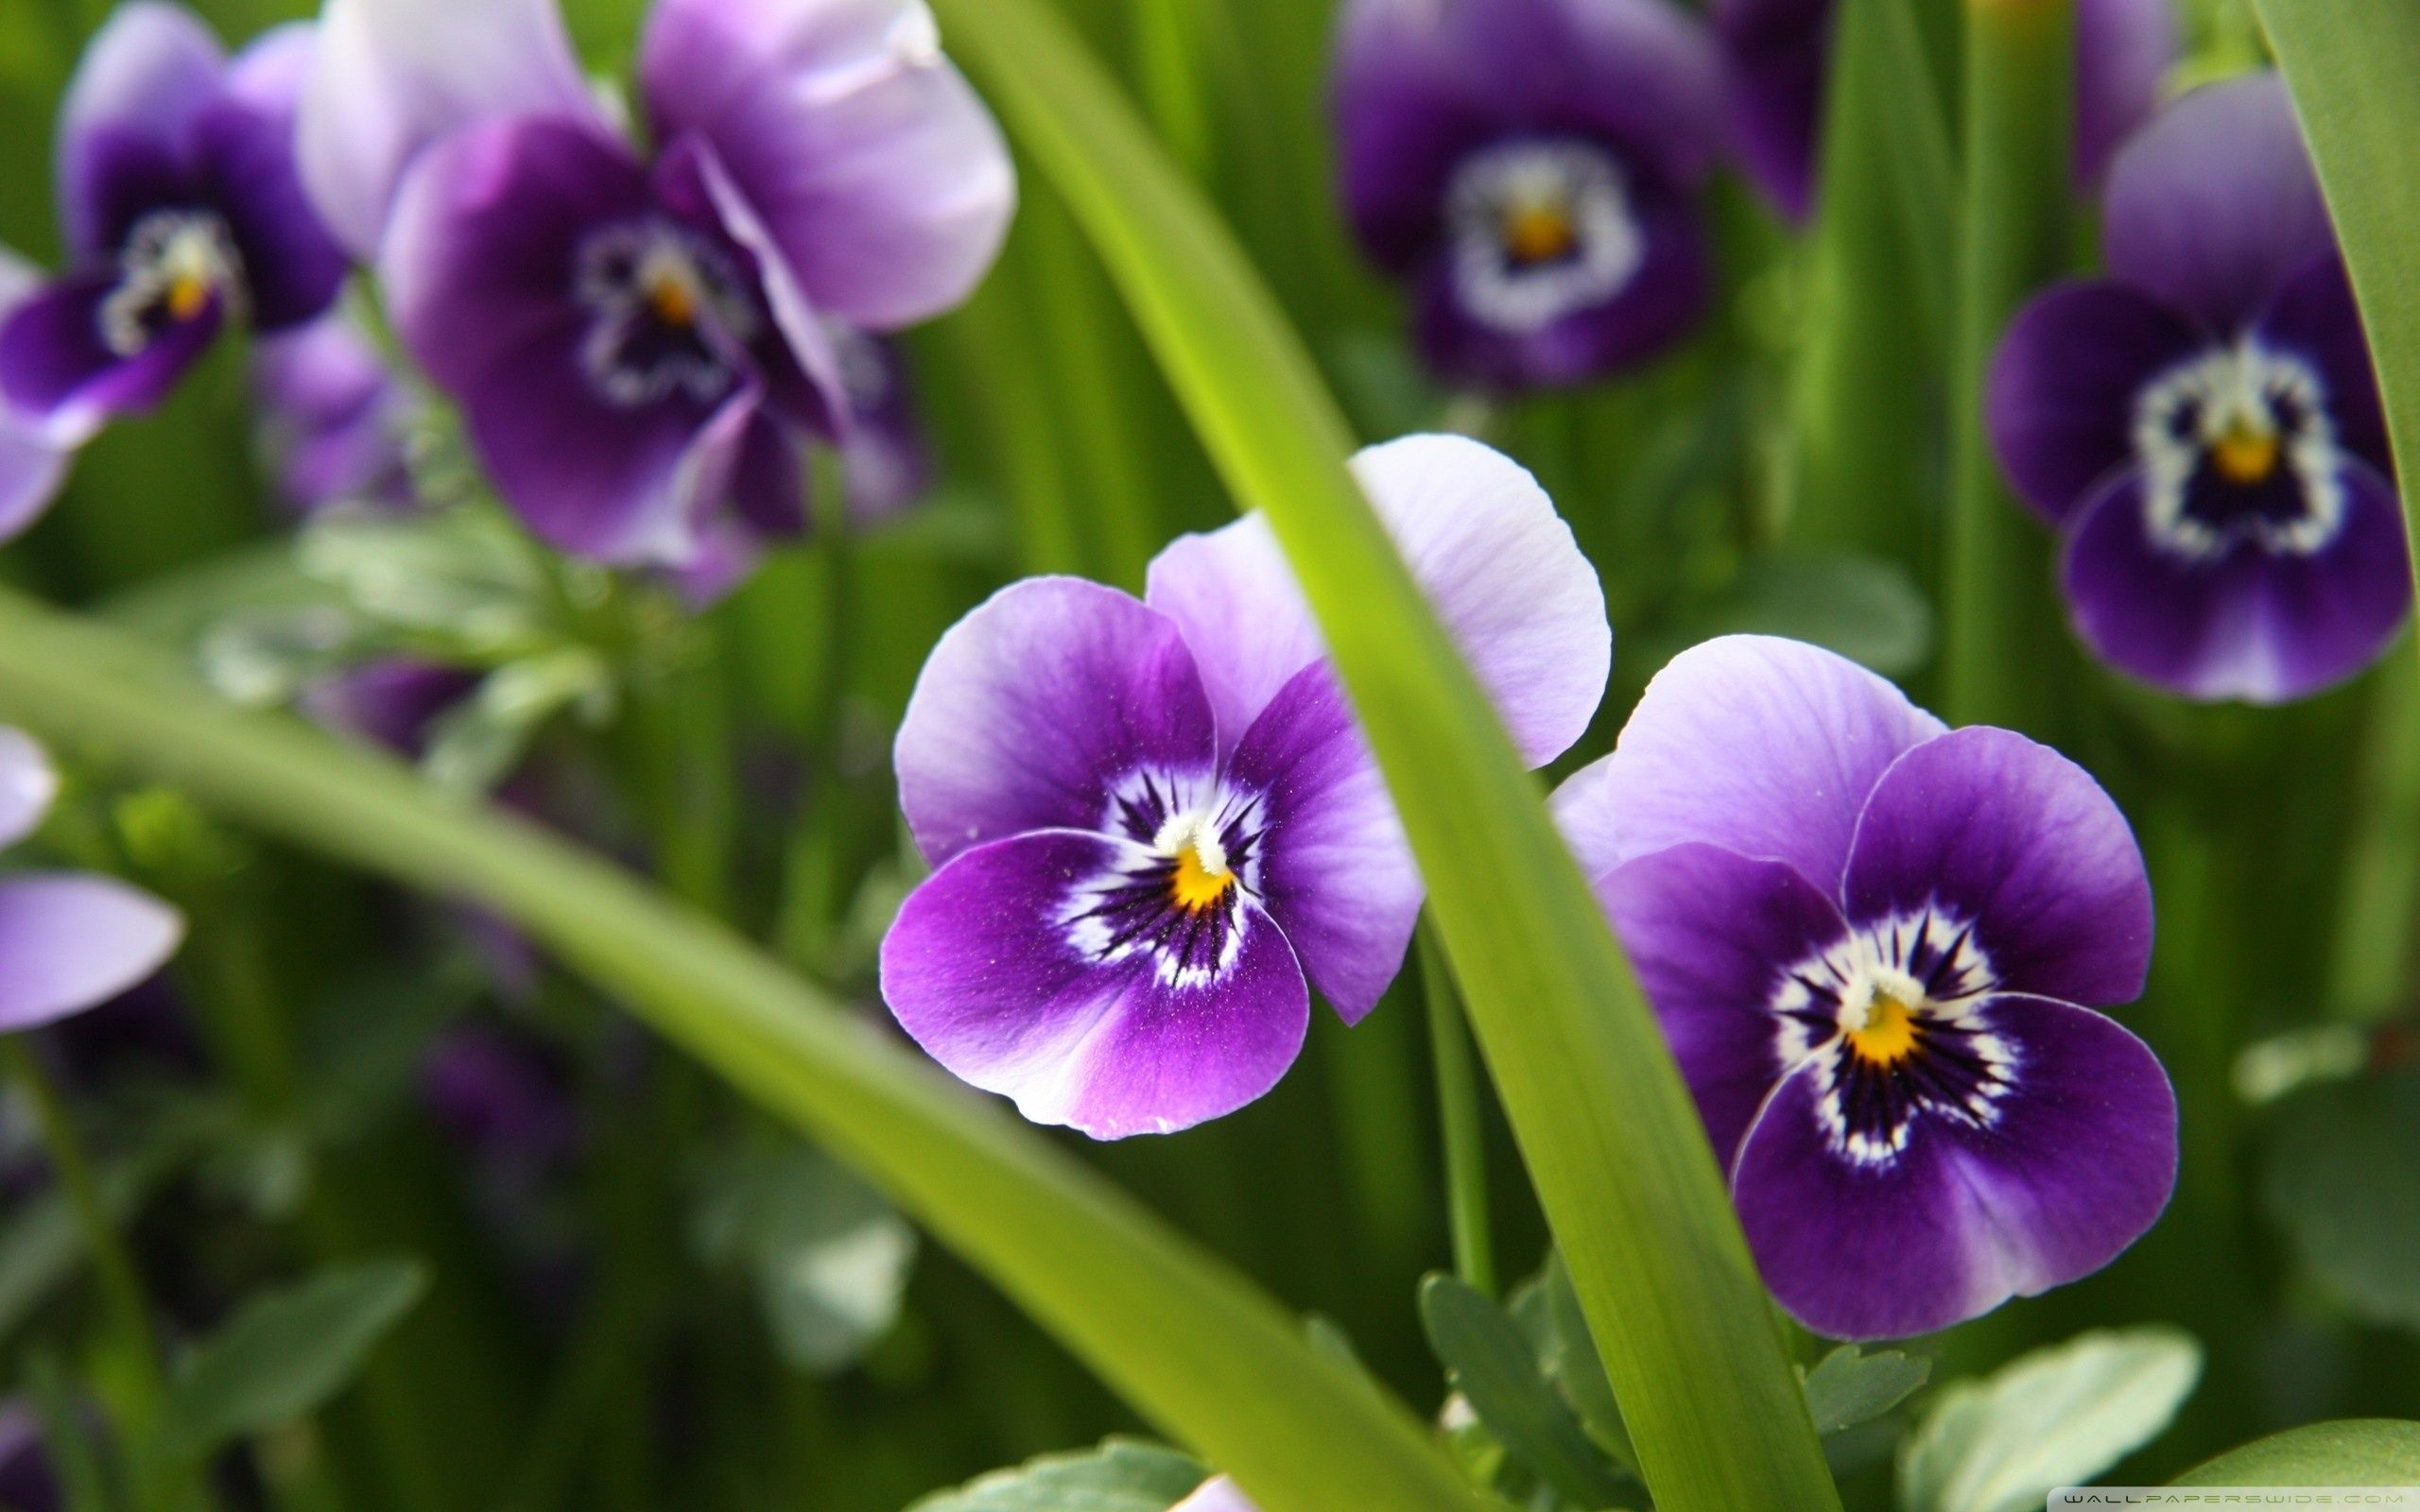 Peek A Boo Pansies Photo Only No Source Found Pansies Flowers Purple Flowers Wallpaper Purple Flower Pictures